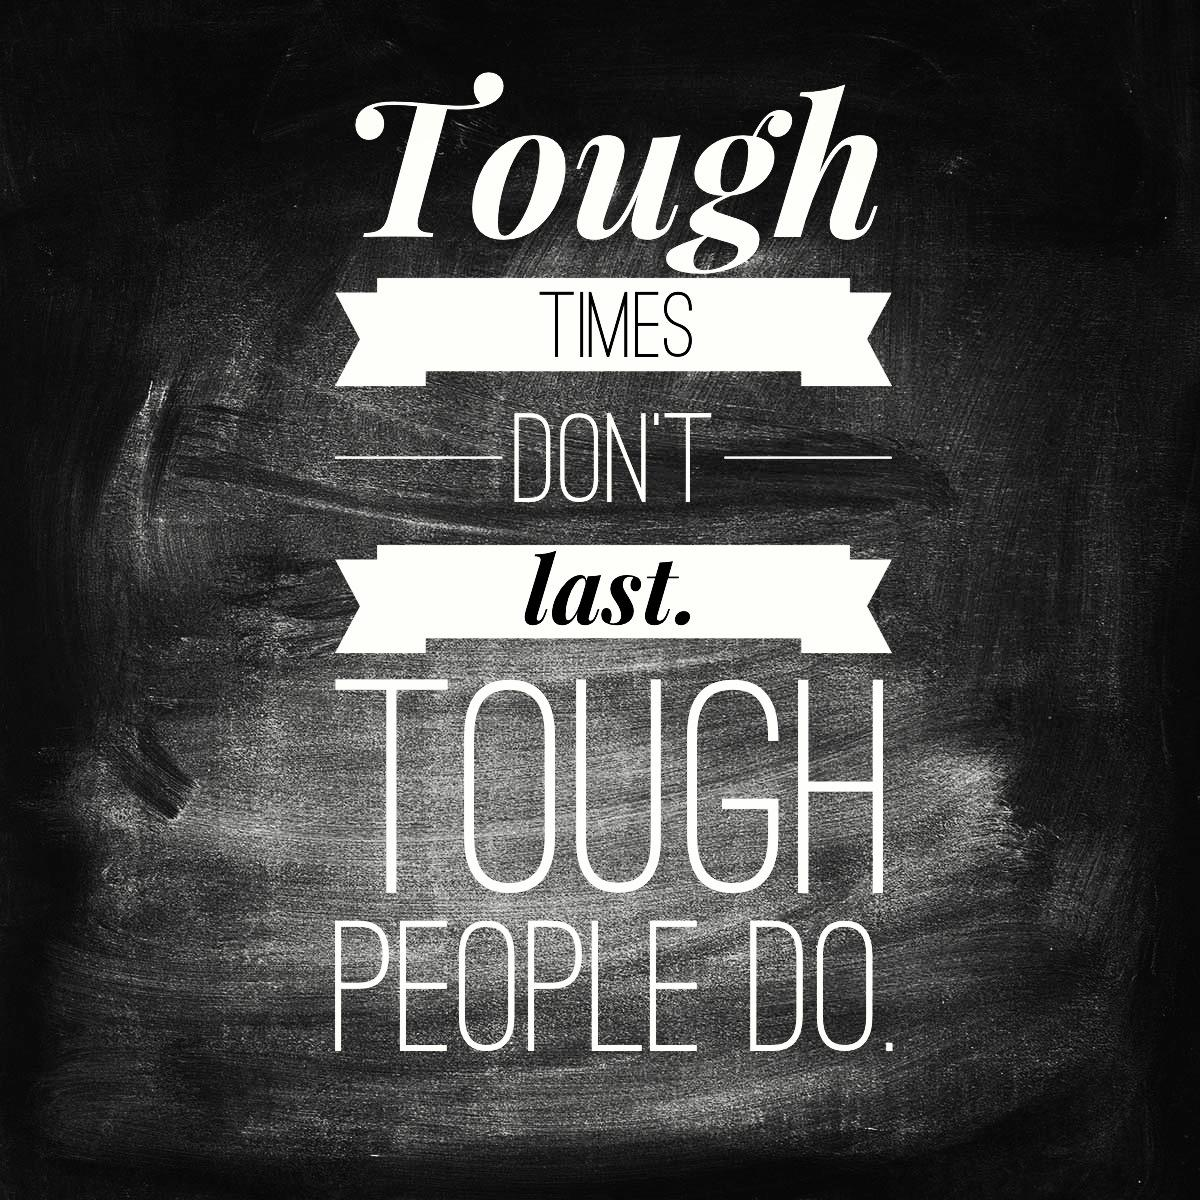 [Image] tough times don't last…